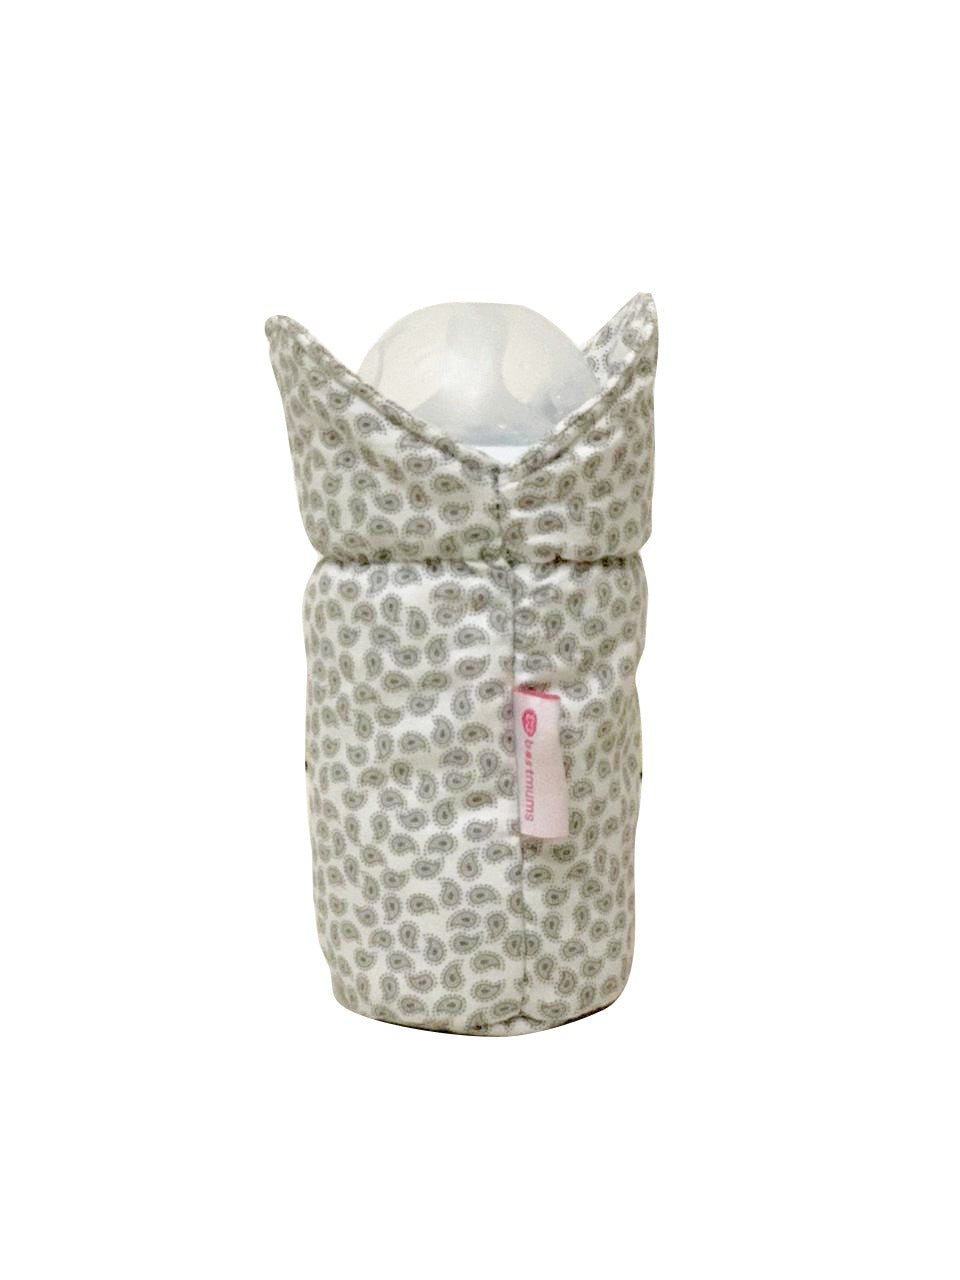 Grey Cashmere Bottle Cover